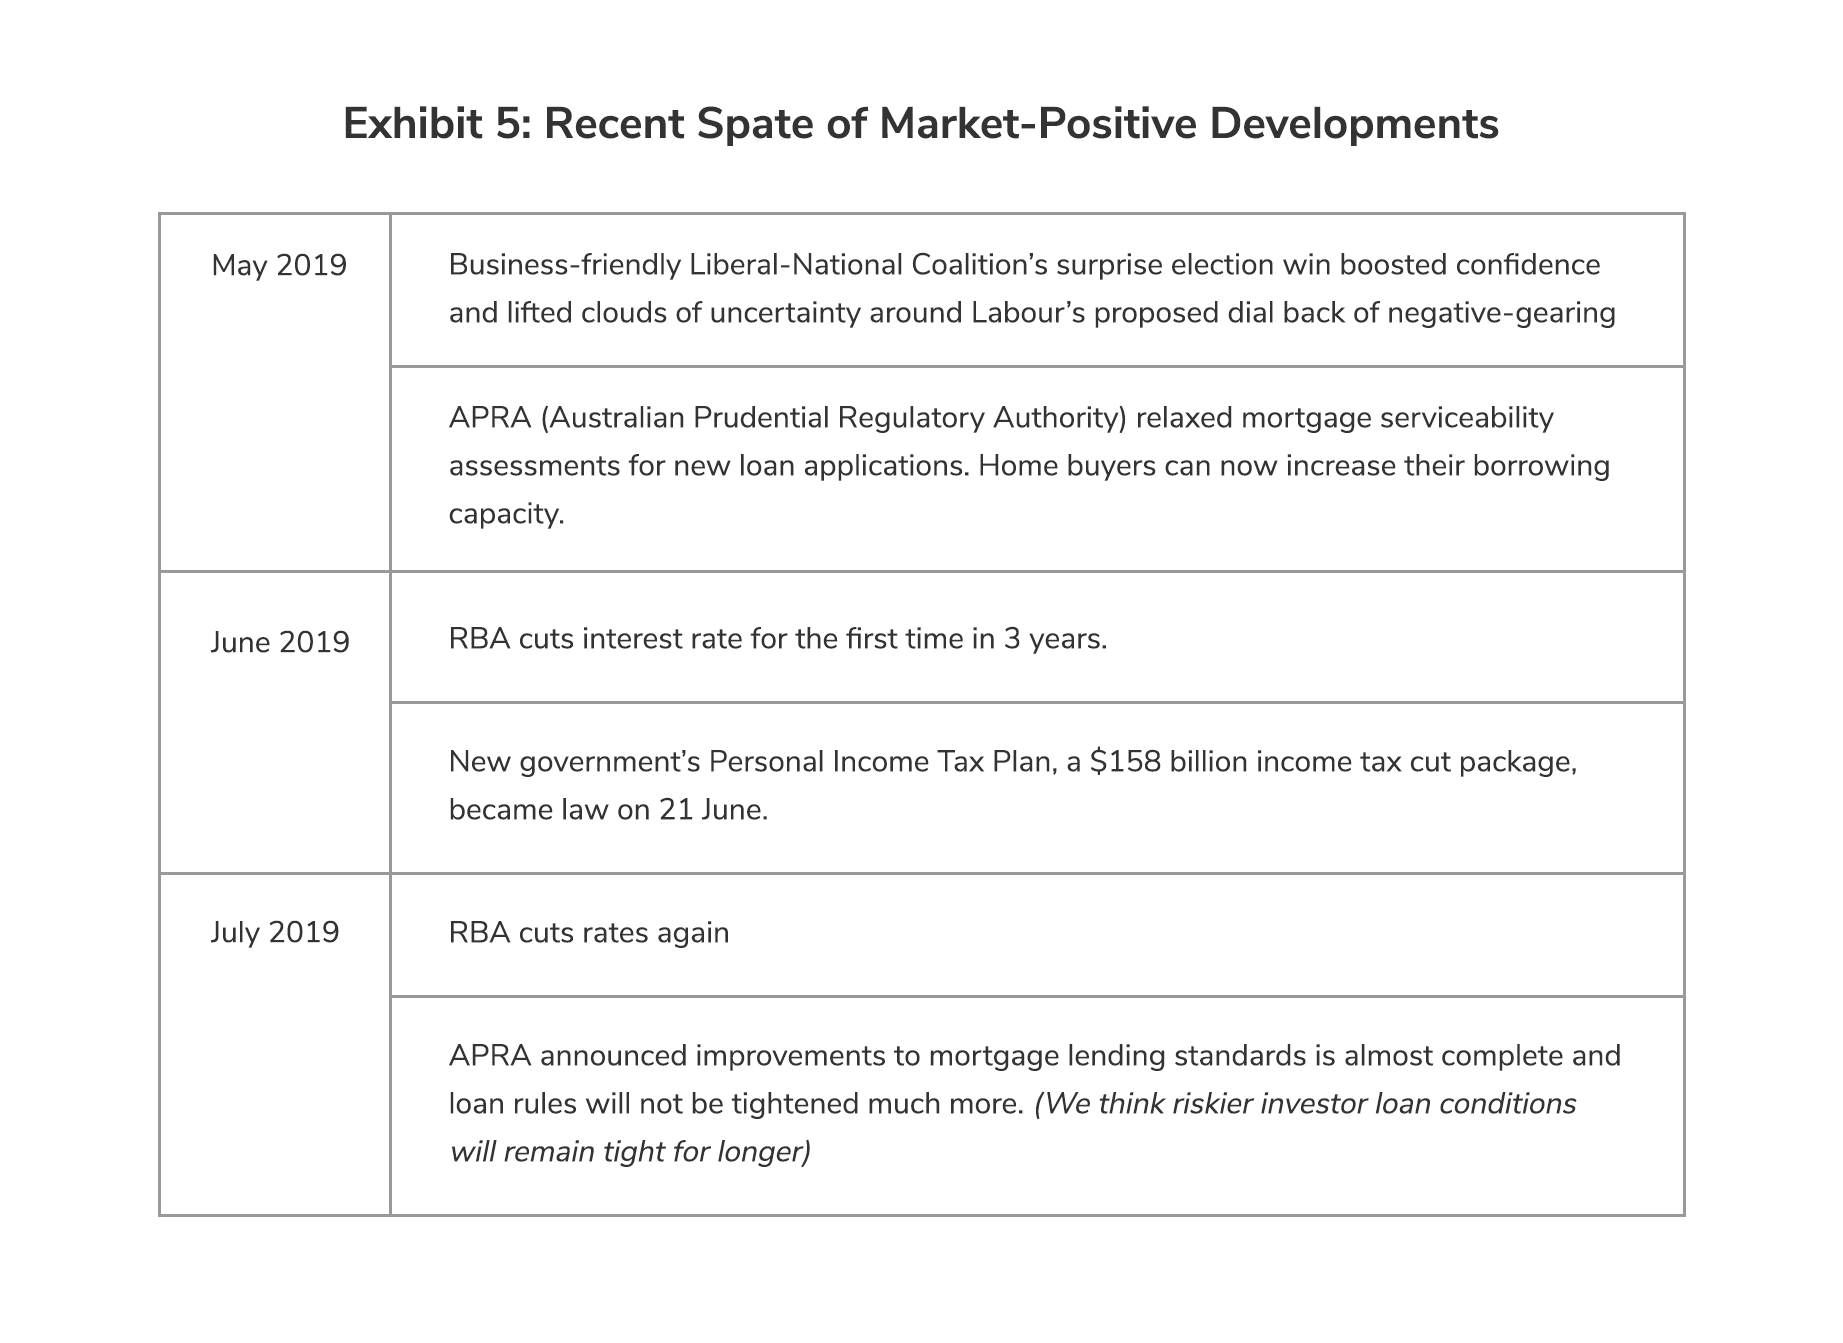 Recent Spate of Market-Positive Developments